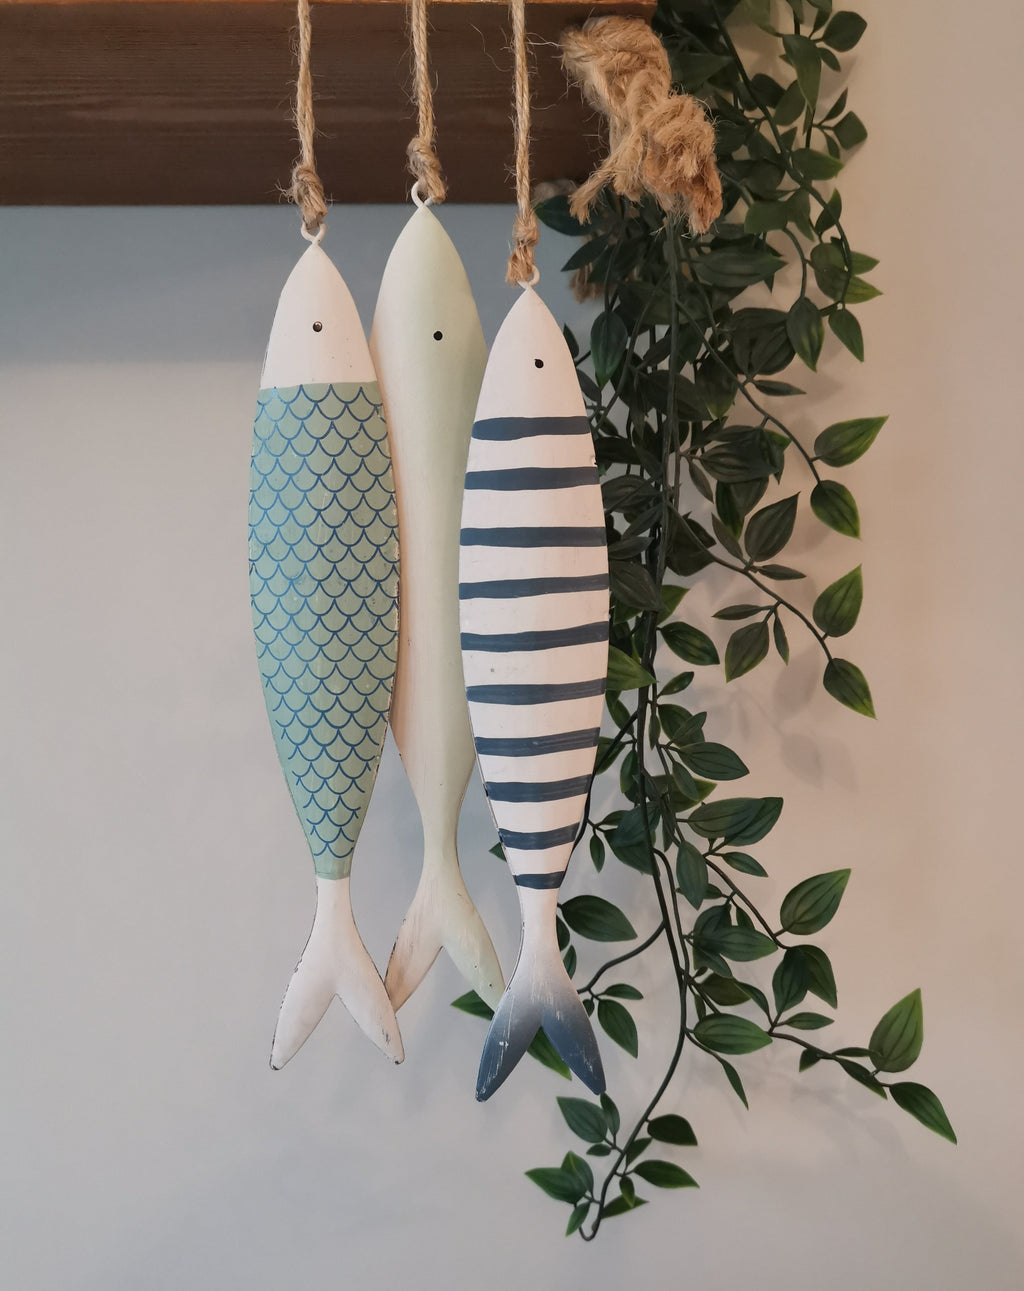 Hanging Metal Fish - The Burrow Interiors